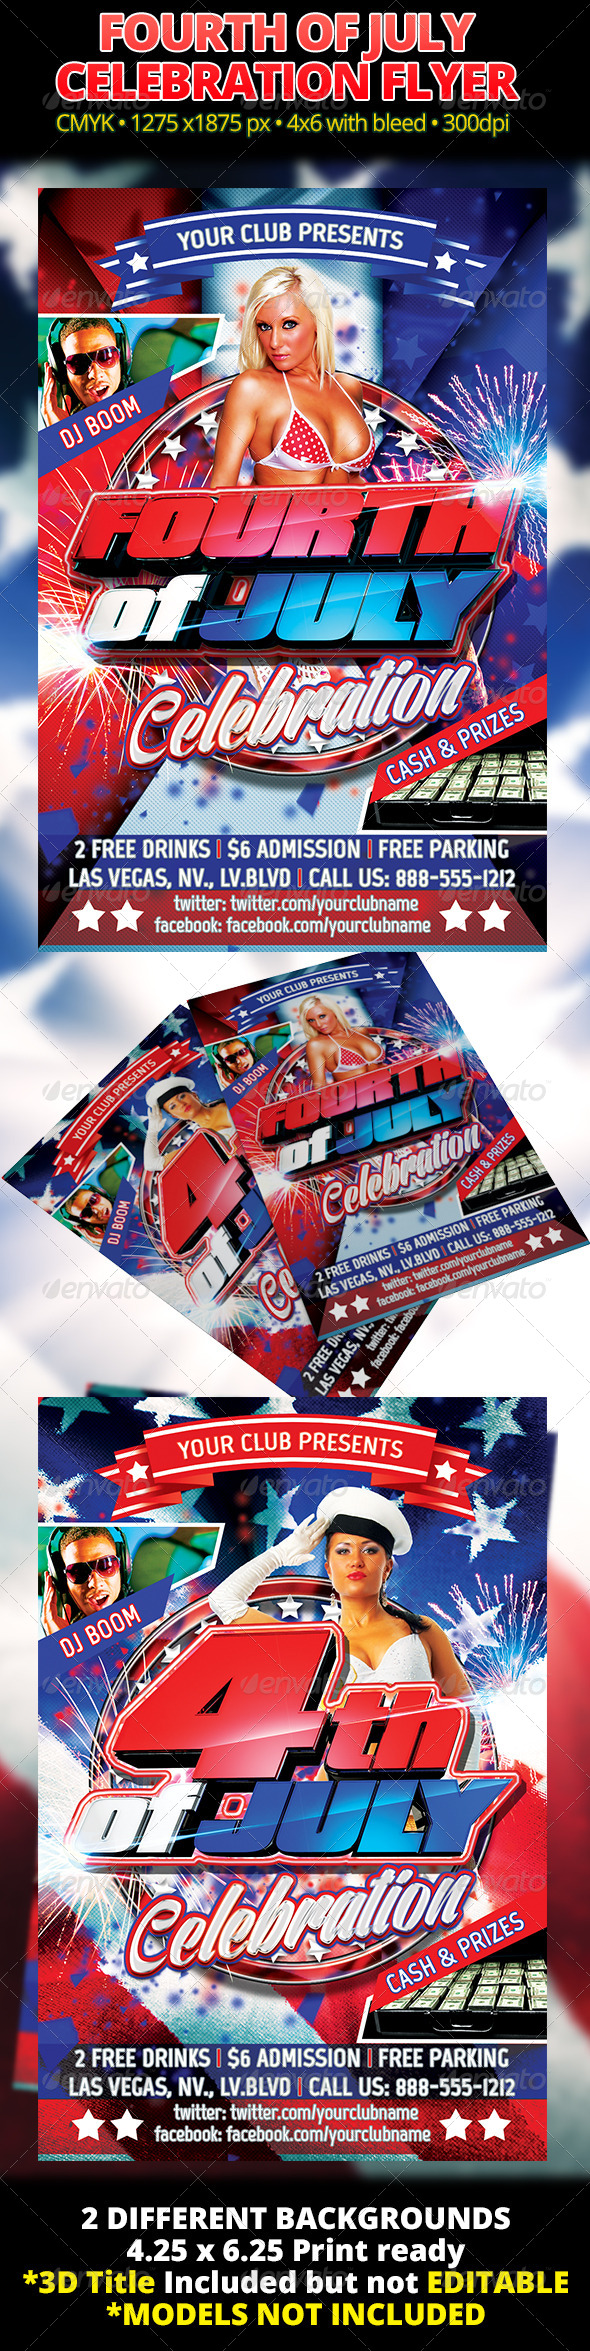 GraphicRiver Fourth Of July Celebration Flyer 4544651